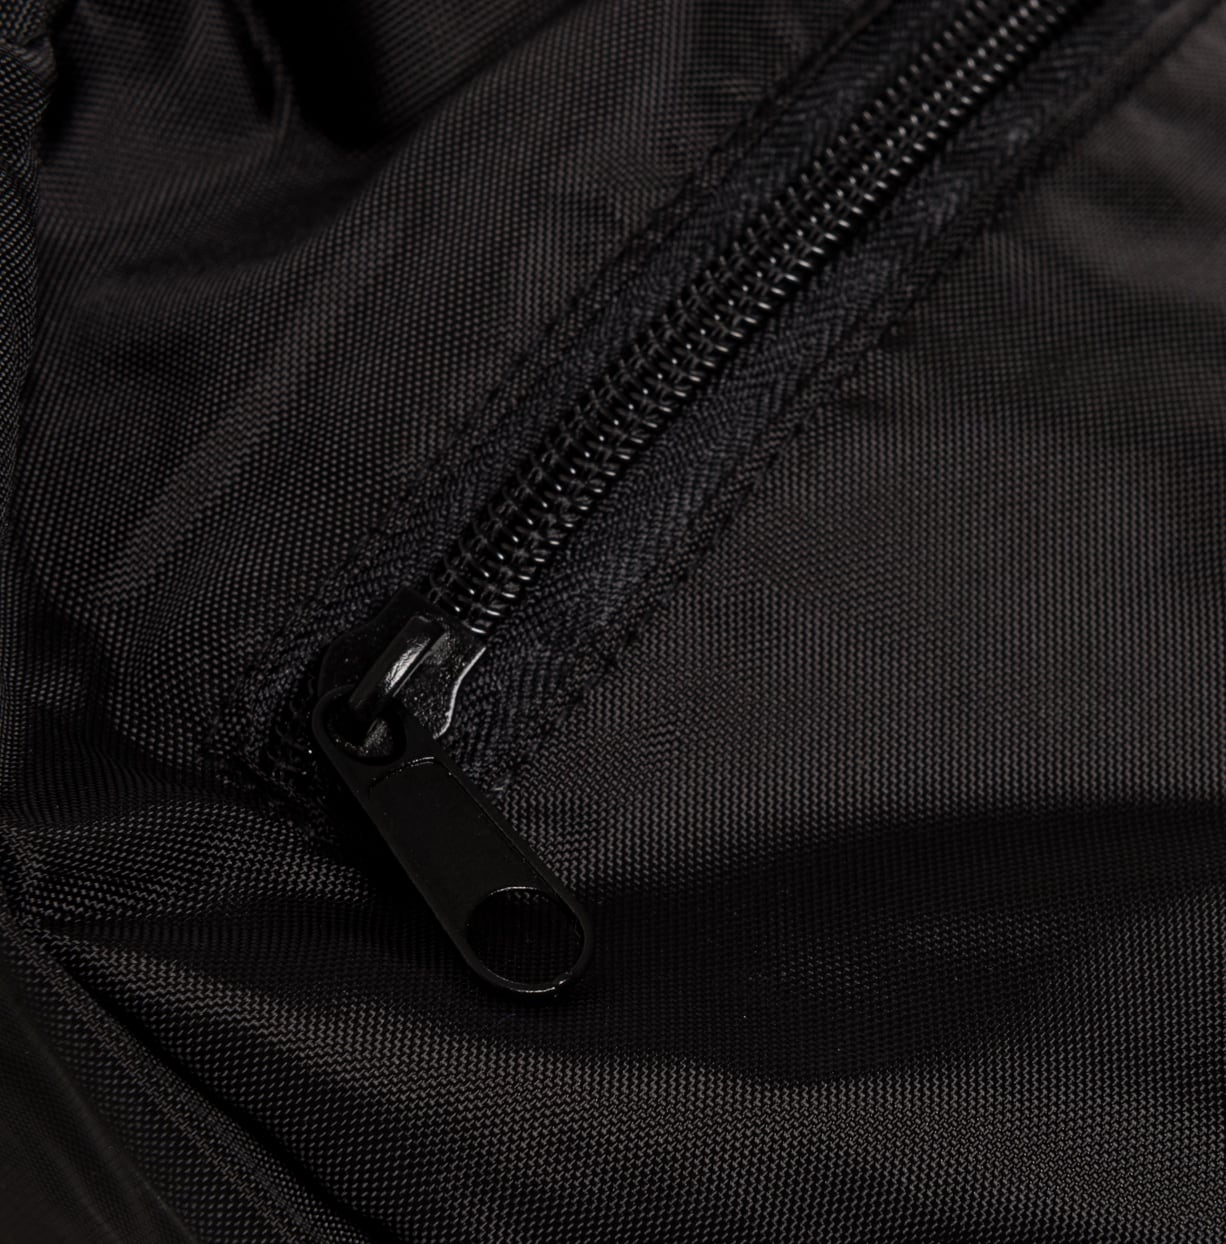 cln-gymnastic-bag-detail